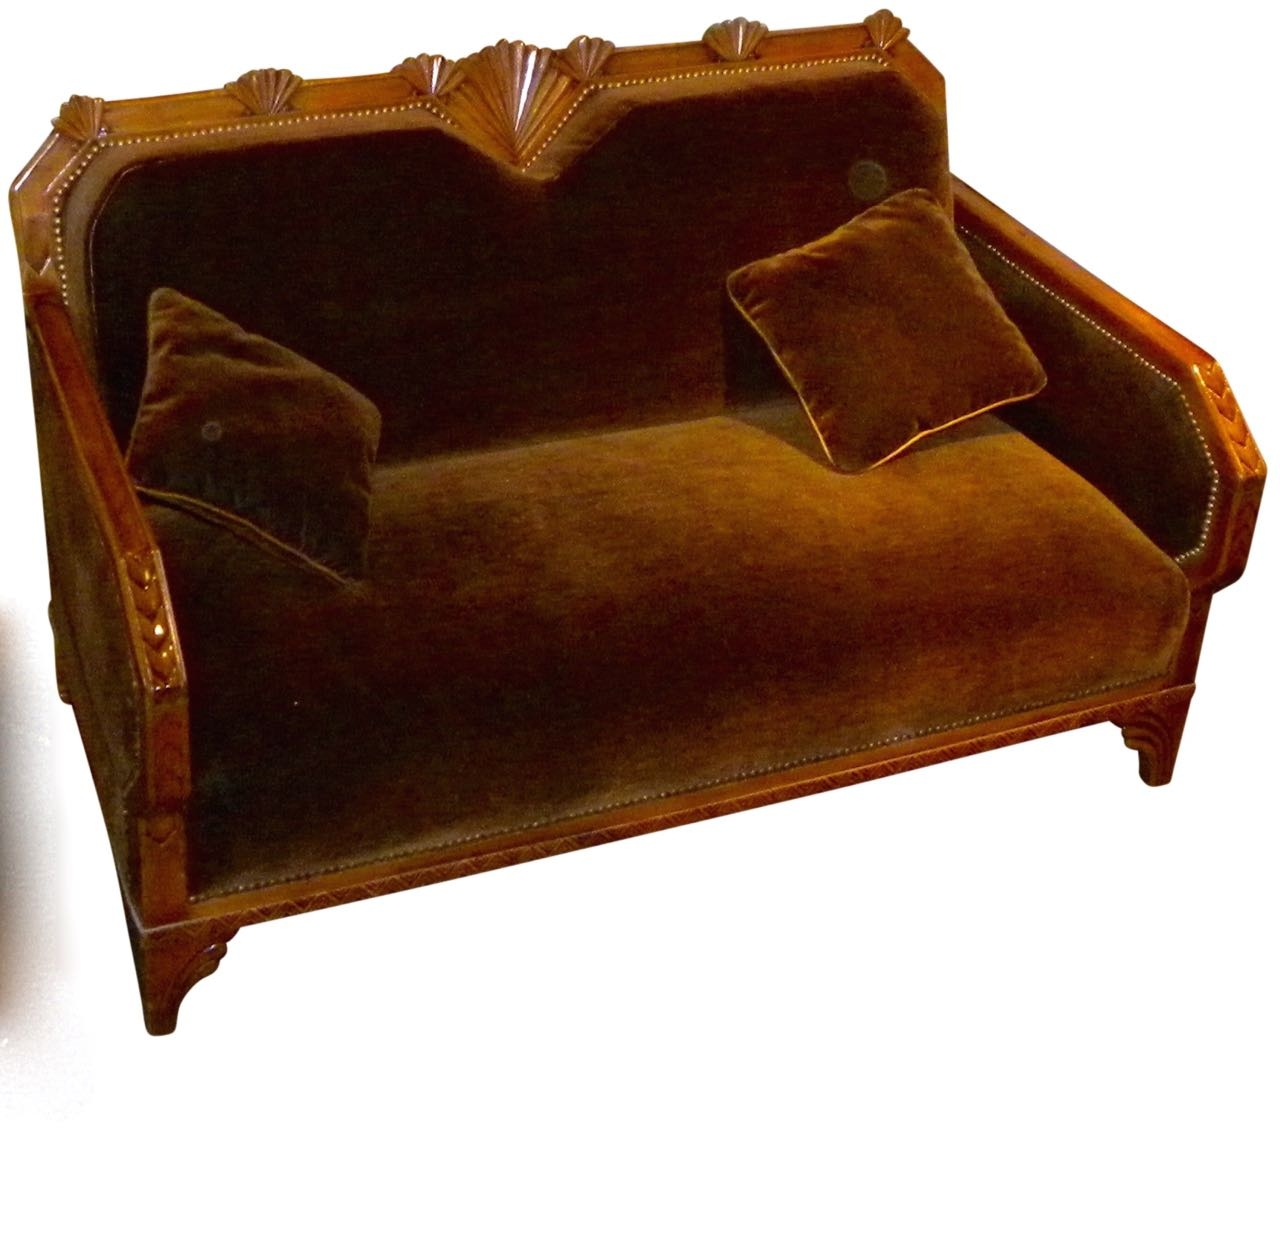 Art Deco Furniture For Sale Seating Items Art Deco Collection Inside Art Deco Sofa And Chairs (Image 4 of 15)